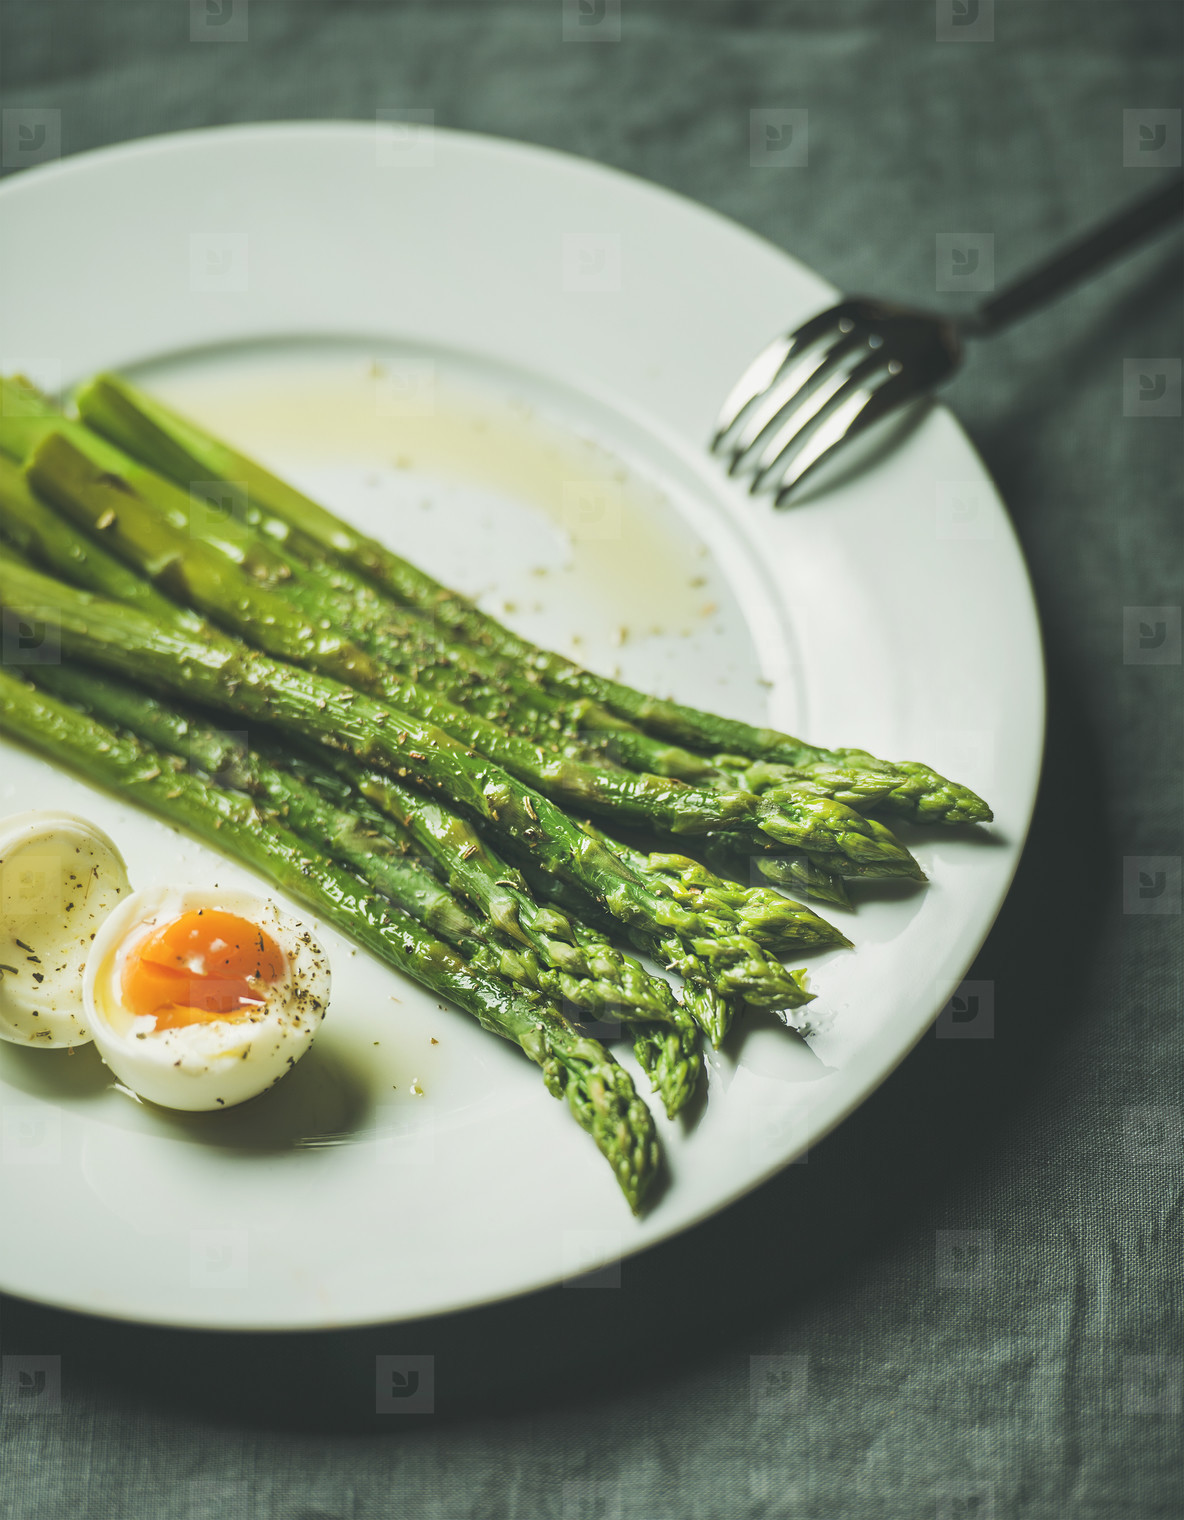 Cooked asparagus with soft boiled egg and herbs  selective focus